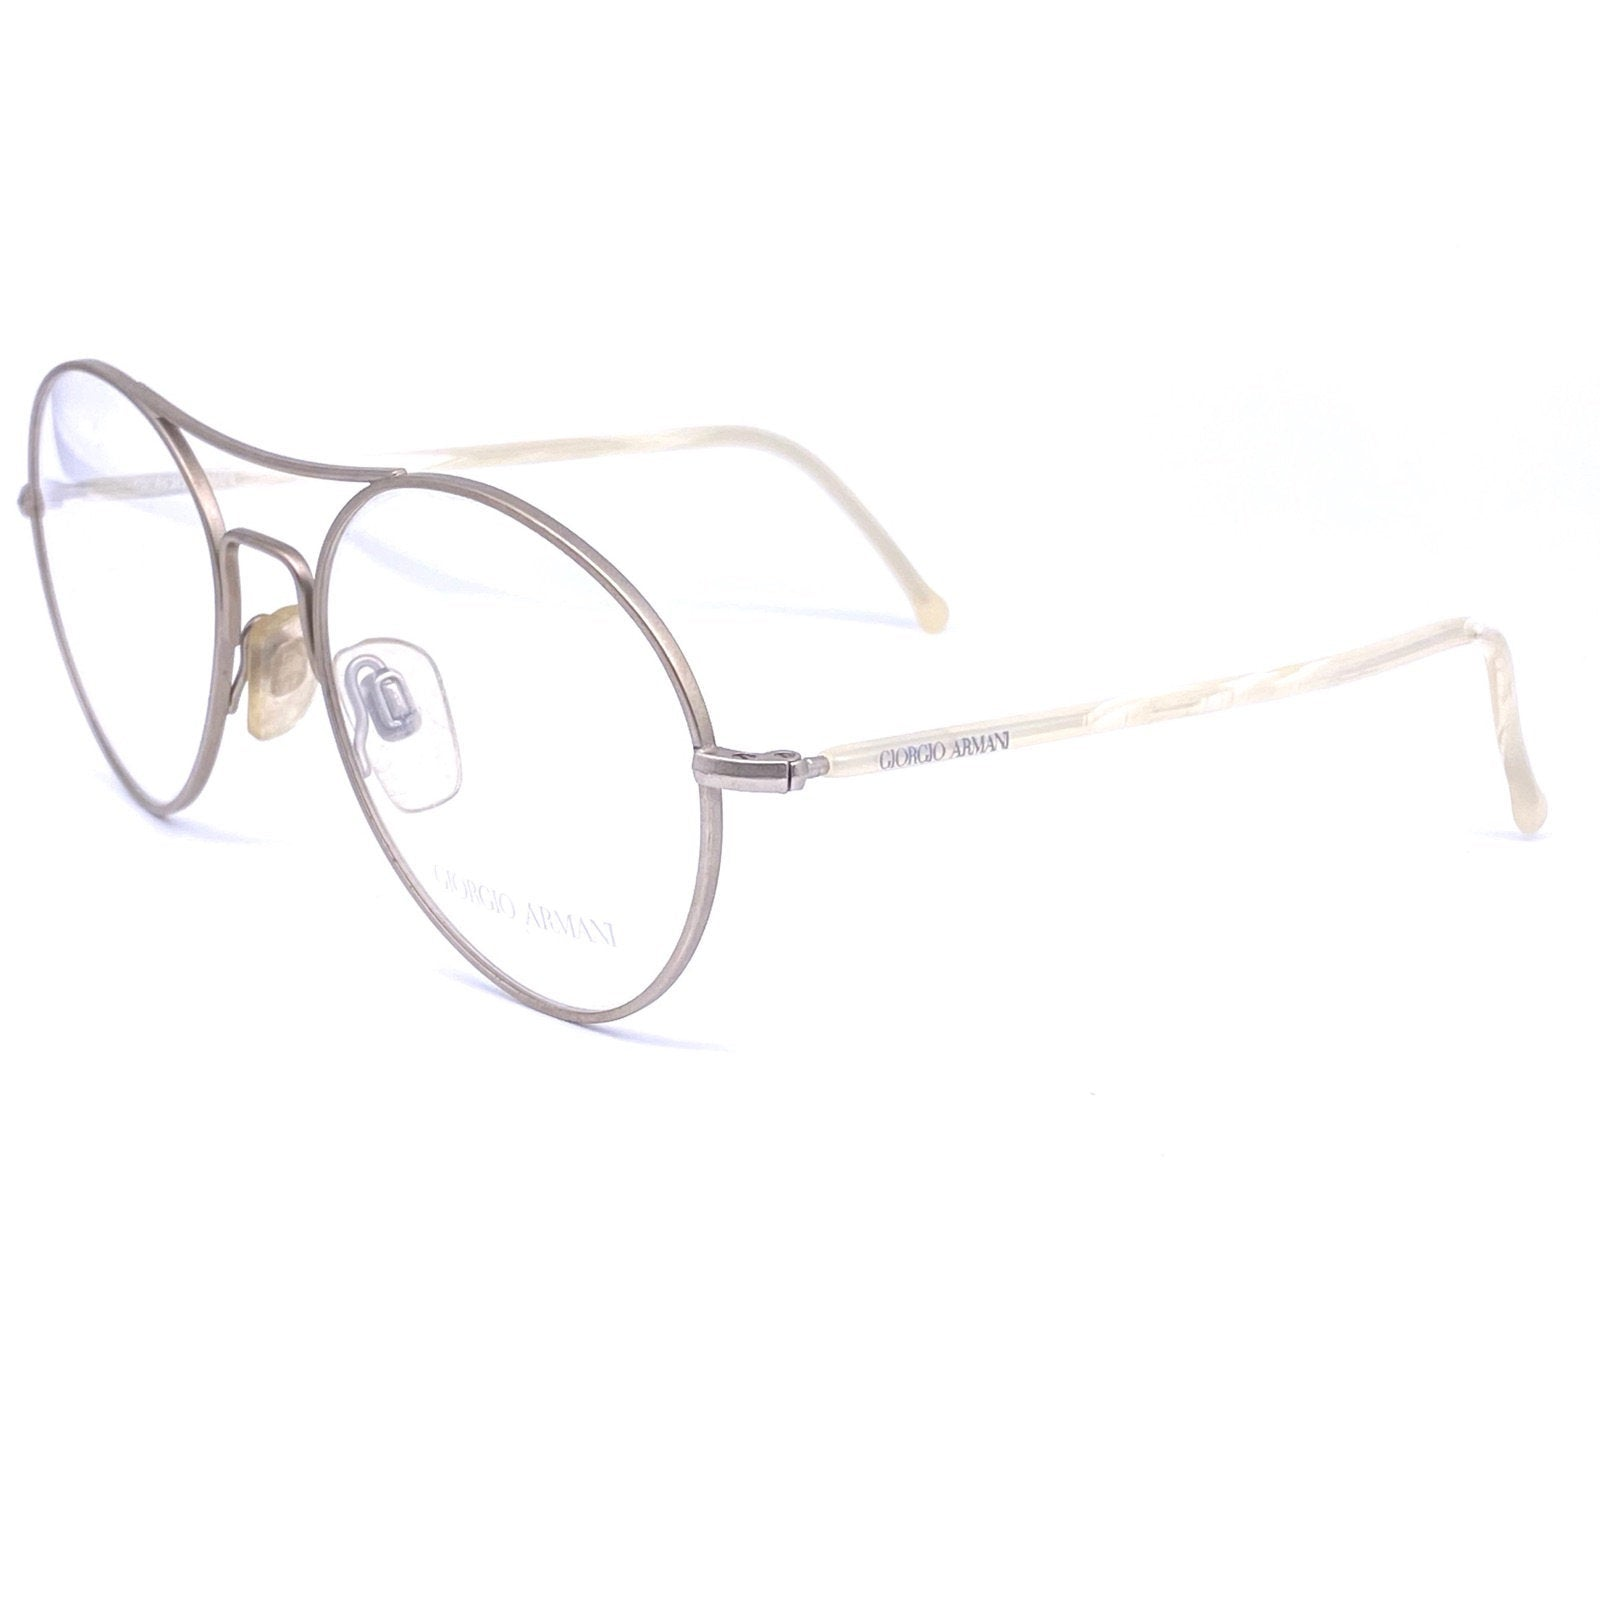 Giorgio Armani round aviator glasses frames, silver metal marbled temples, 80s NOS - viceversashop